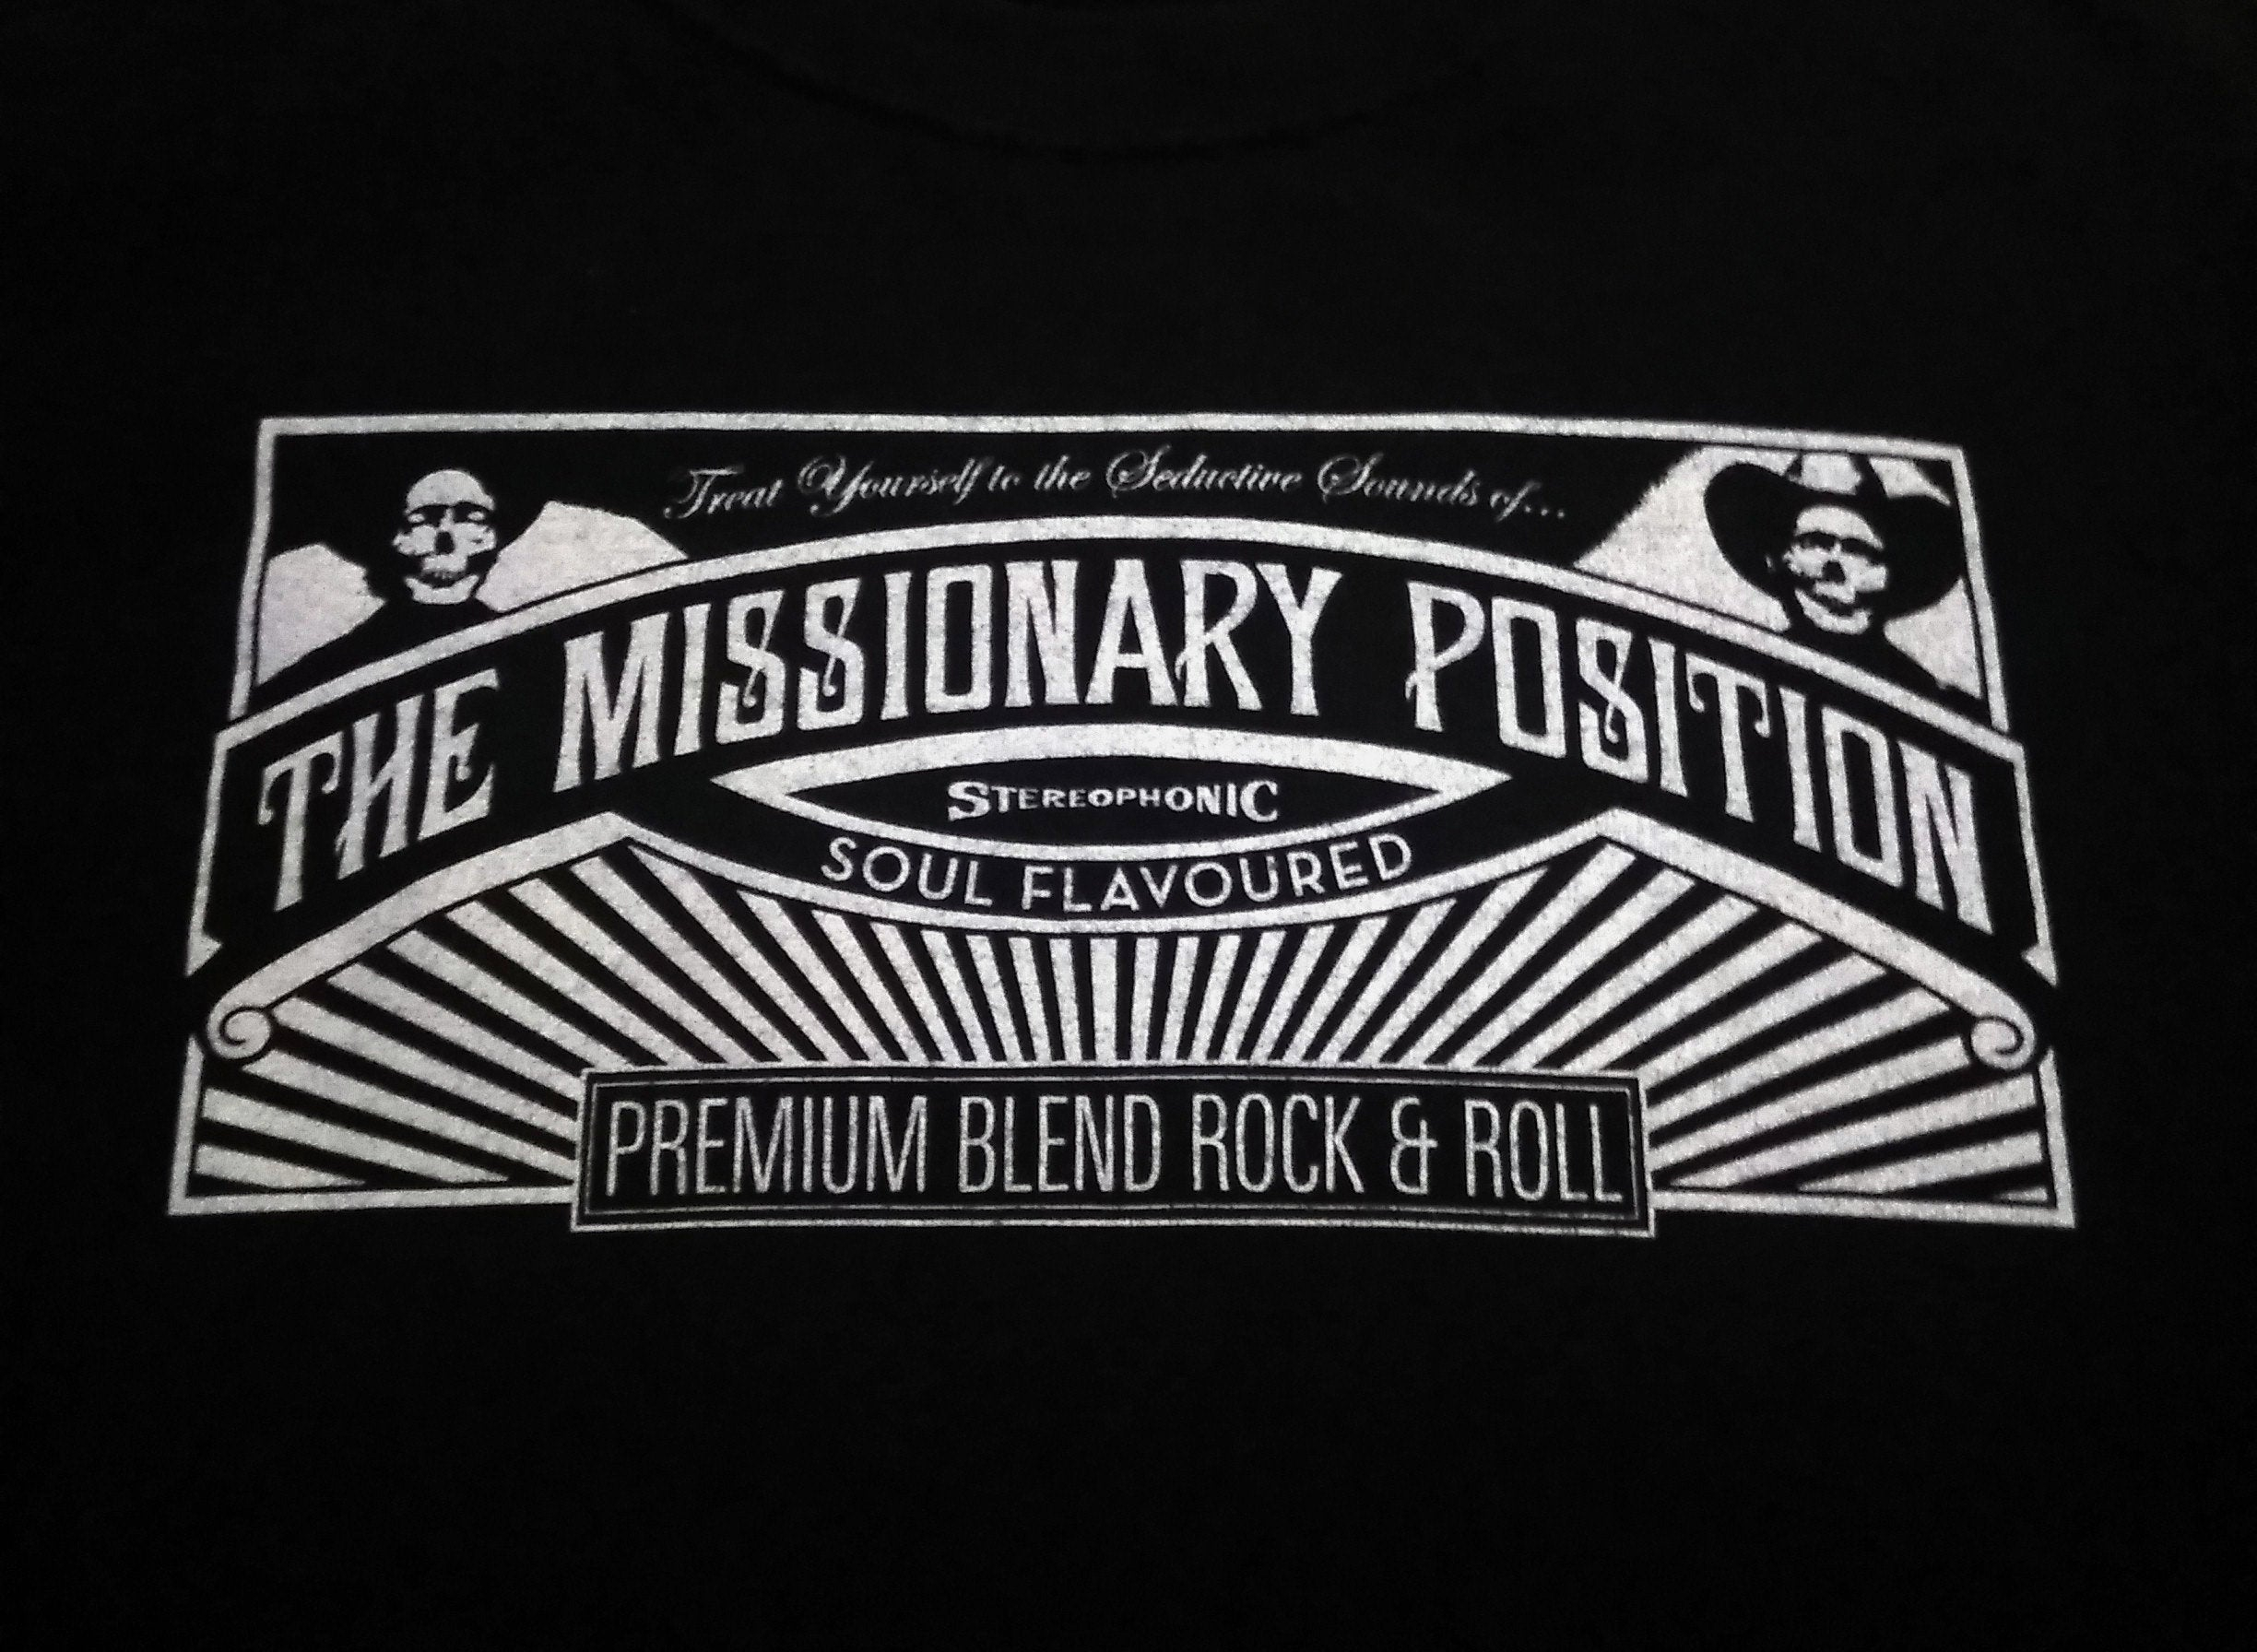 Missionary Position Diagram Rare The Missionary Position Unisex Black Short Sleeve Graphic T Shirt Jeff Angell Benjamin Anderson Rock Roll Hard Rock Blues Funk